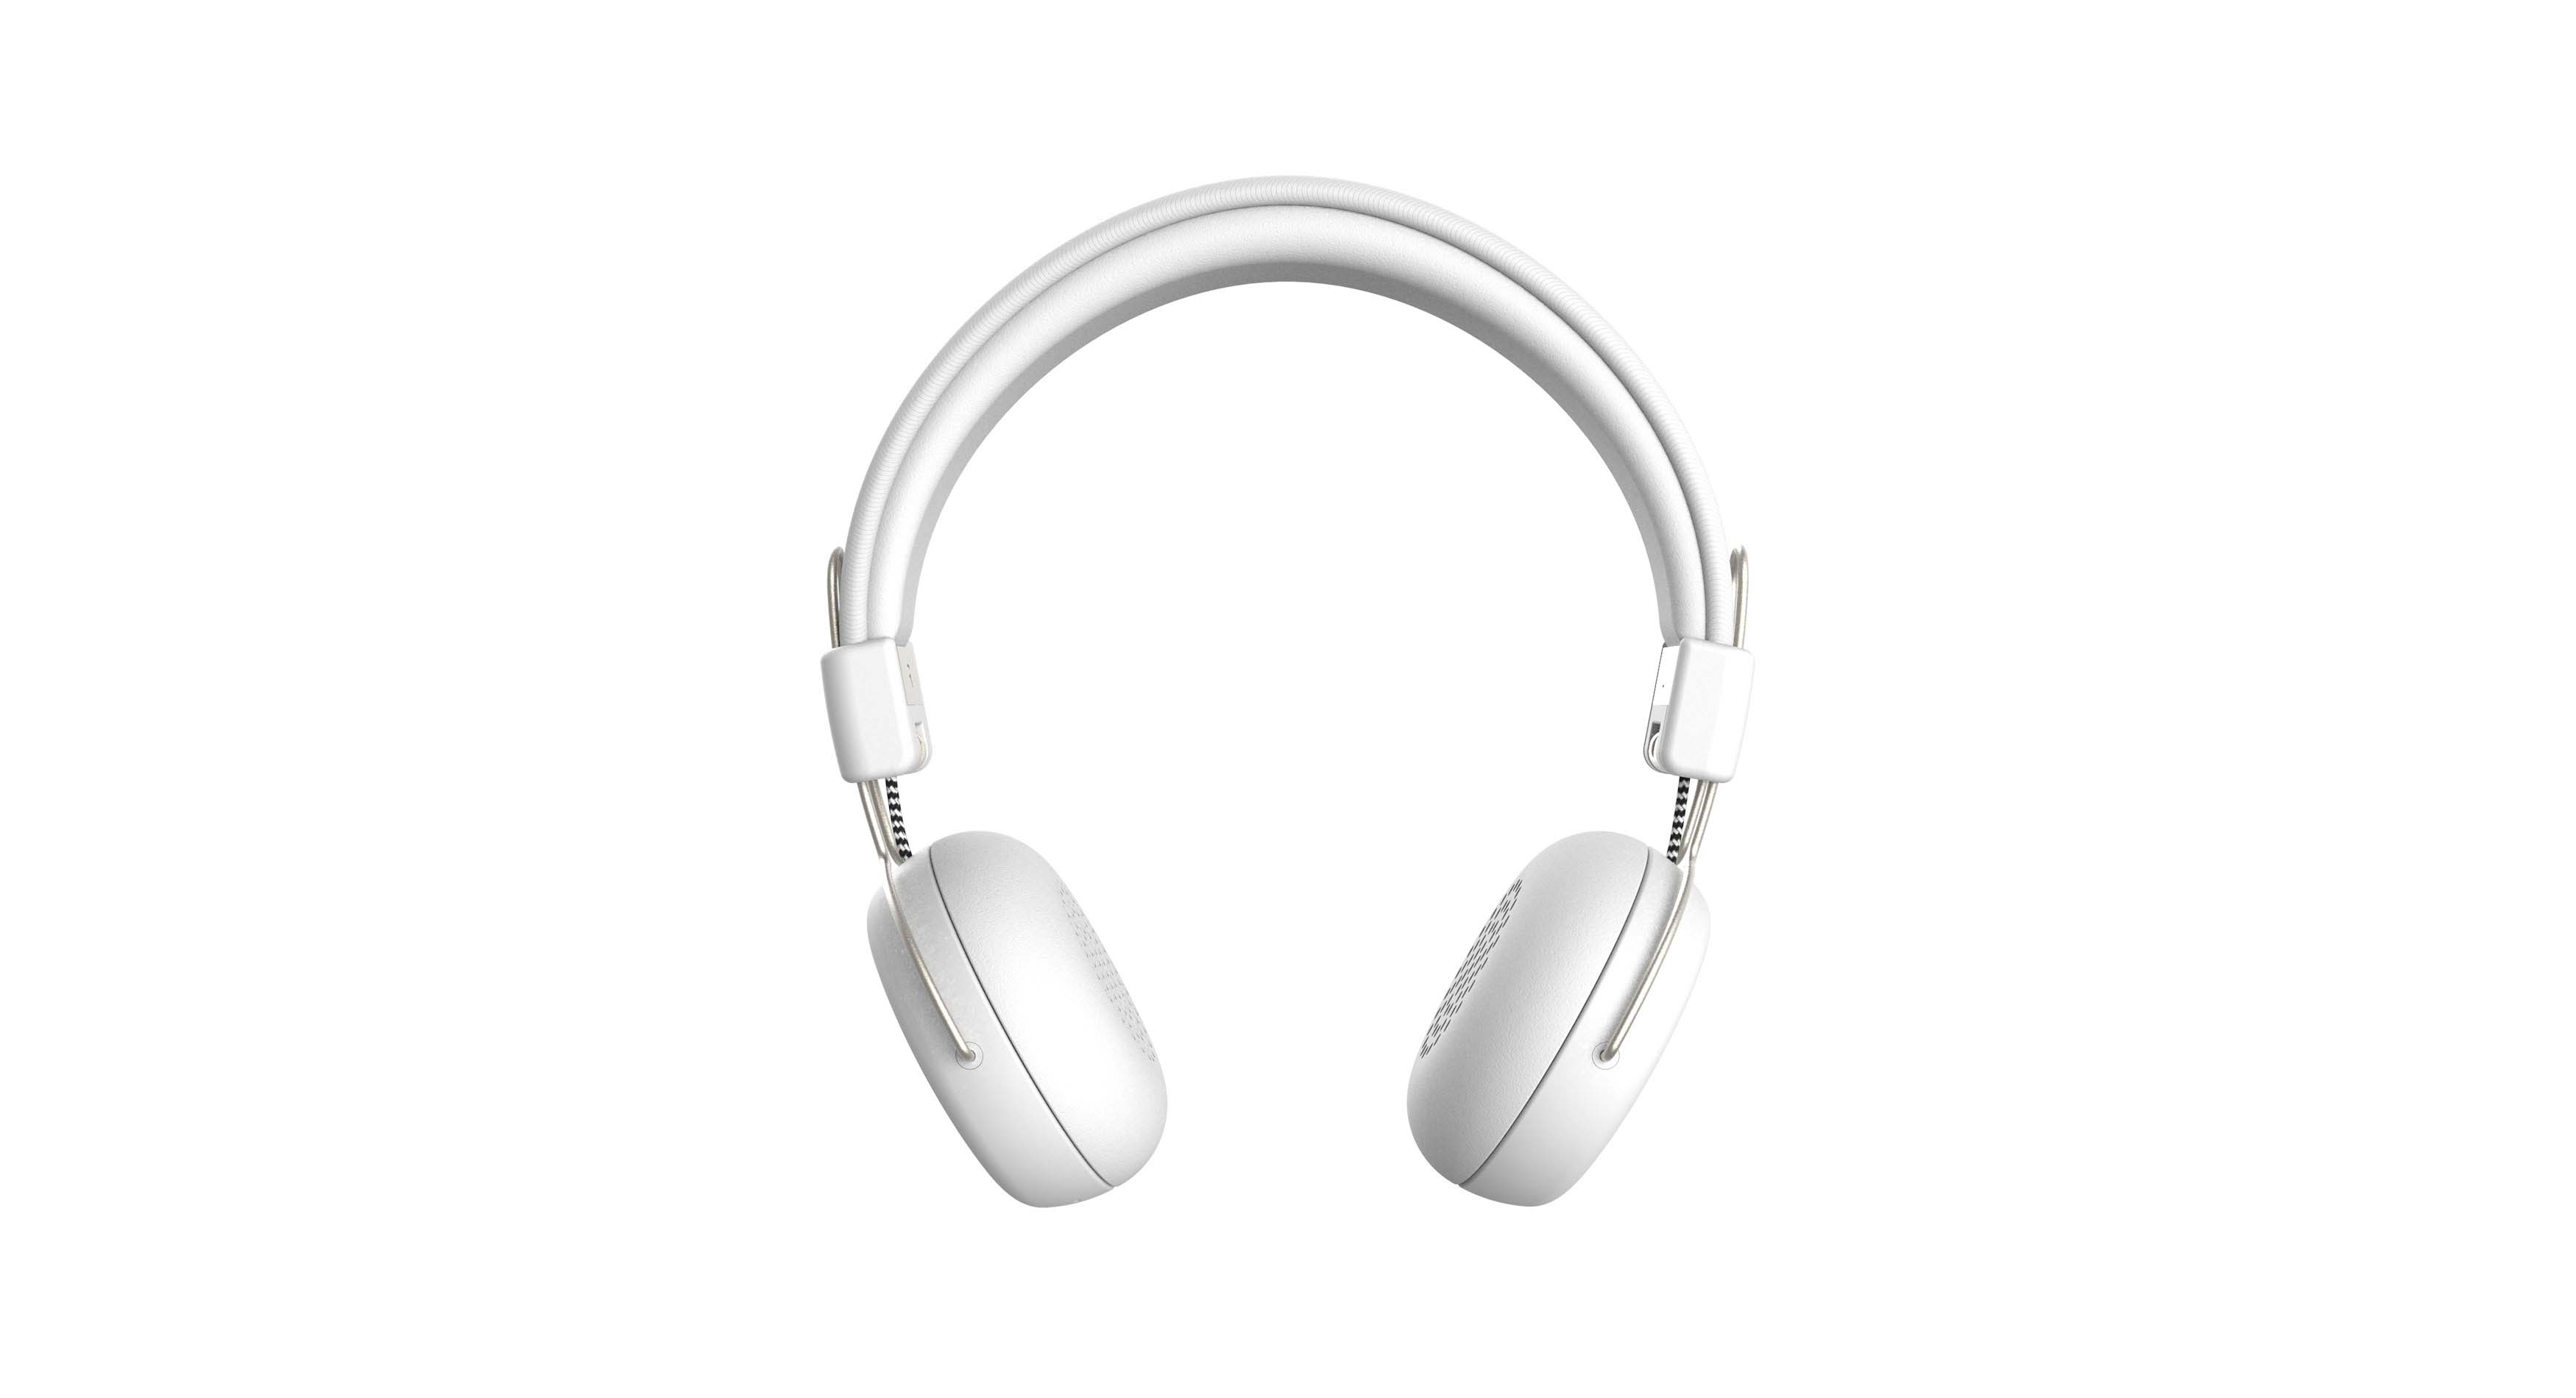 Casque audio bluetooth blanc